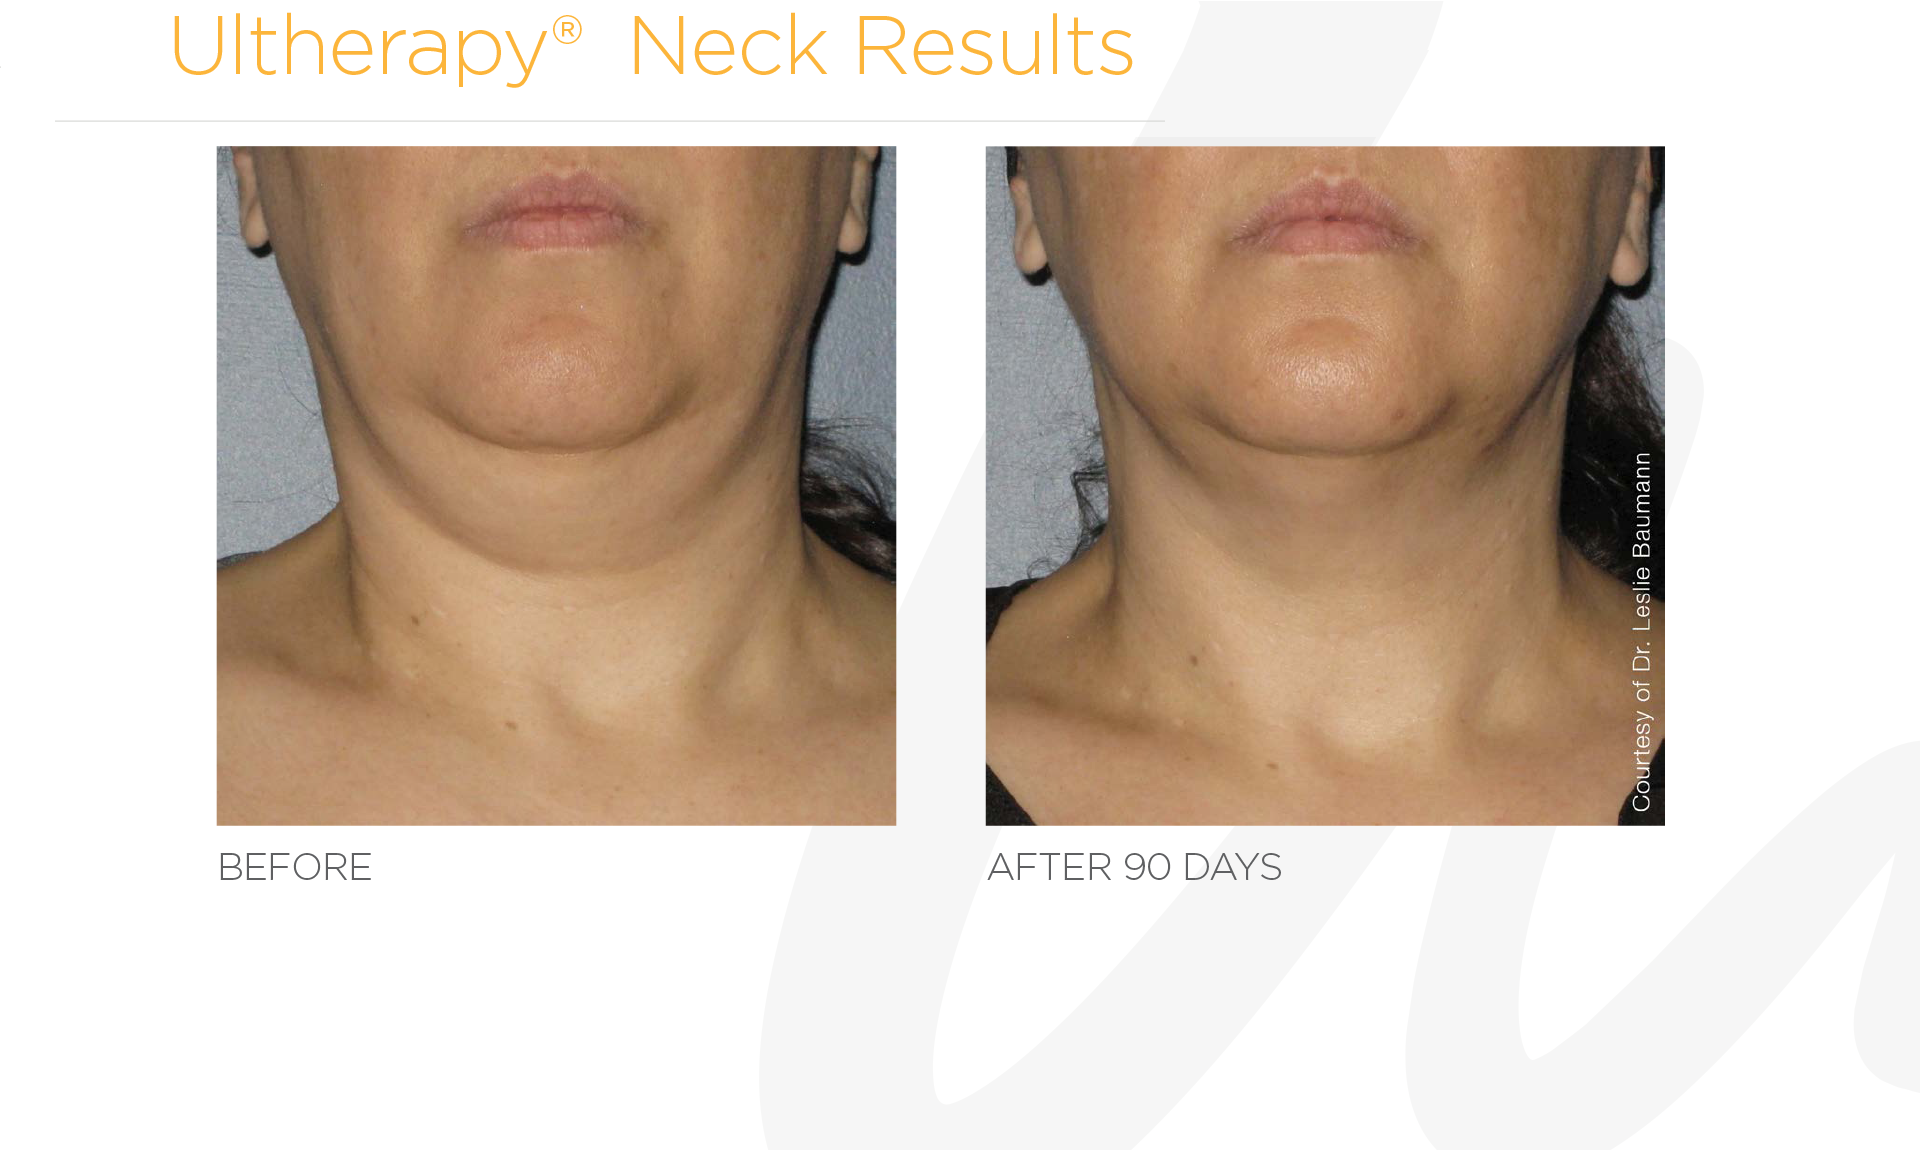 Ultherapy Neck Before And After Results